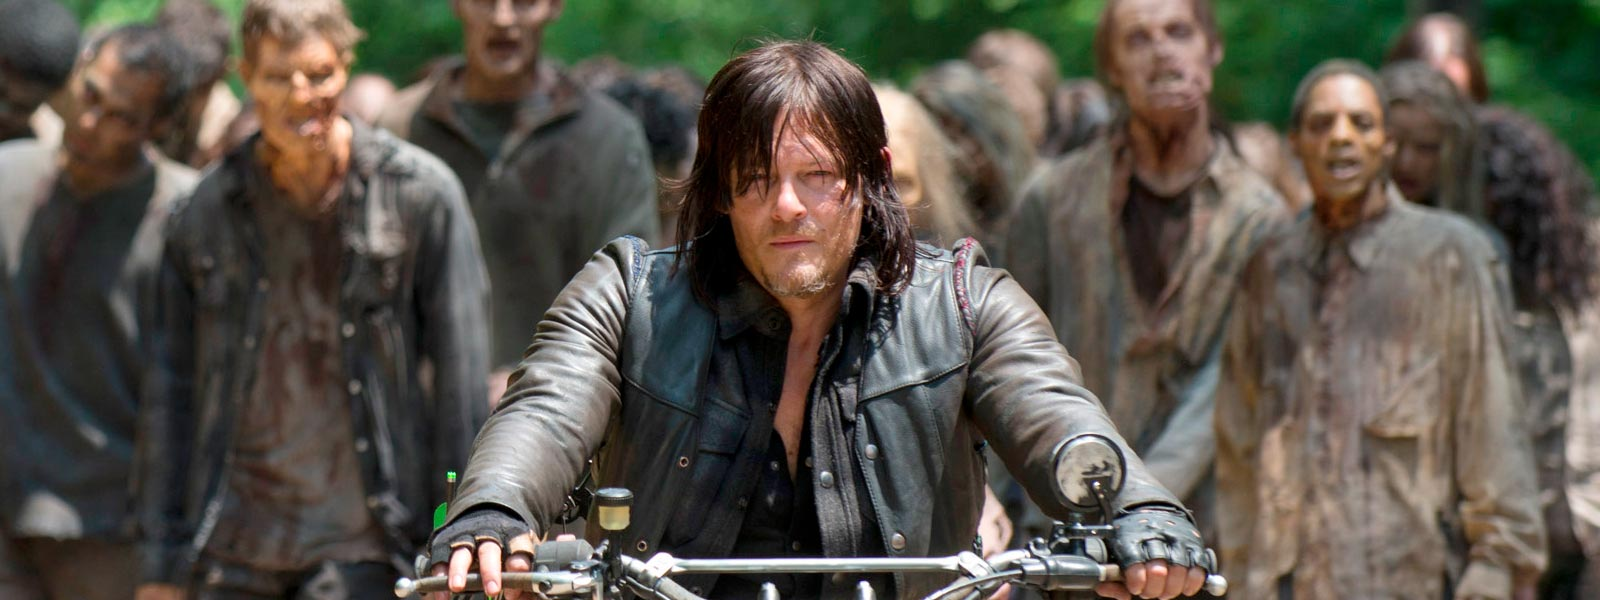 the-walking-dead-episode-601-daryl-reedus-post-800×600